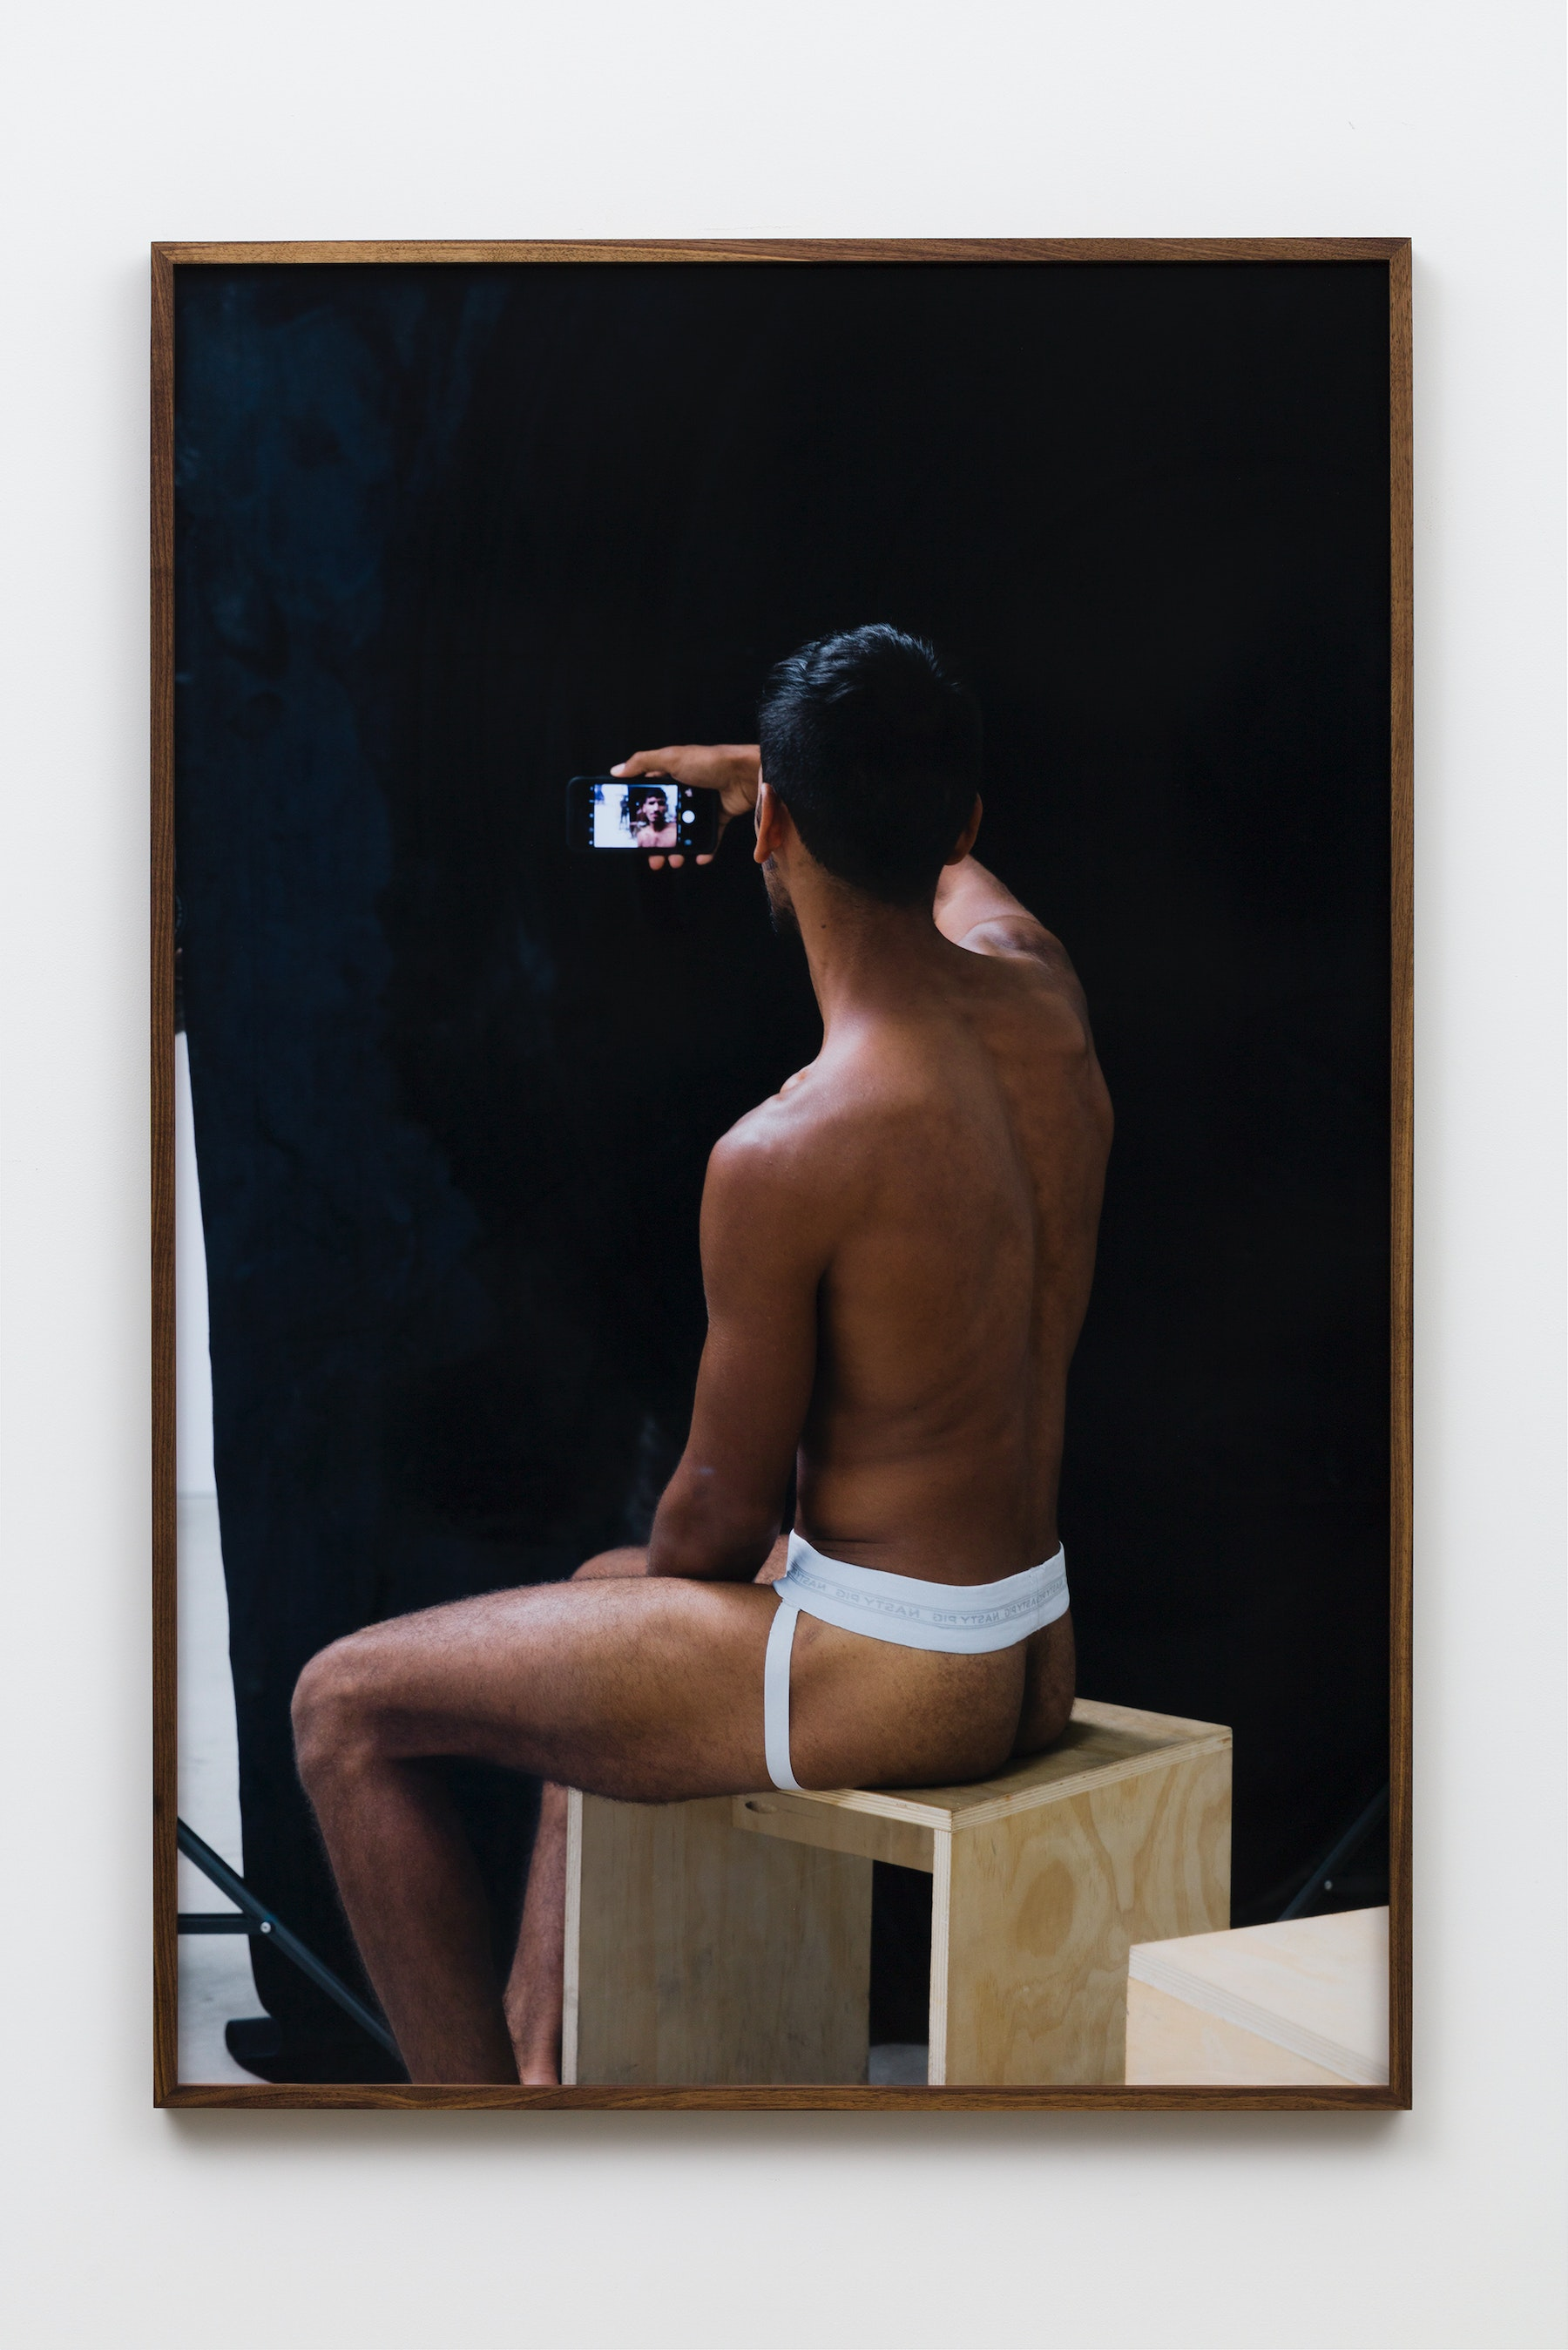 """Paul Mpagi Sepuya """"Model Study (0X5A4029),"""" 2017 Archival pigment print 60 x 40"""" [HxW] (152.4 x 101.6 cm) Edition of 5, 2 AP Inventory #SEP650 Courtesy of the artist and Vielmetter Los Angeles Photo credit: Jeff McLane"""